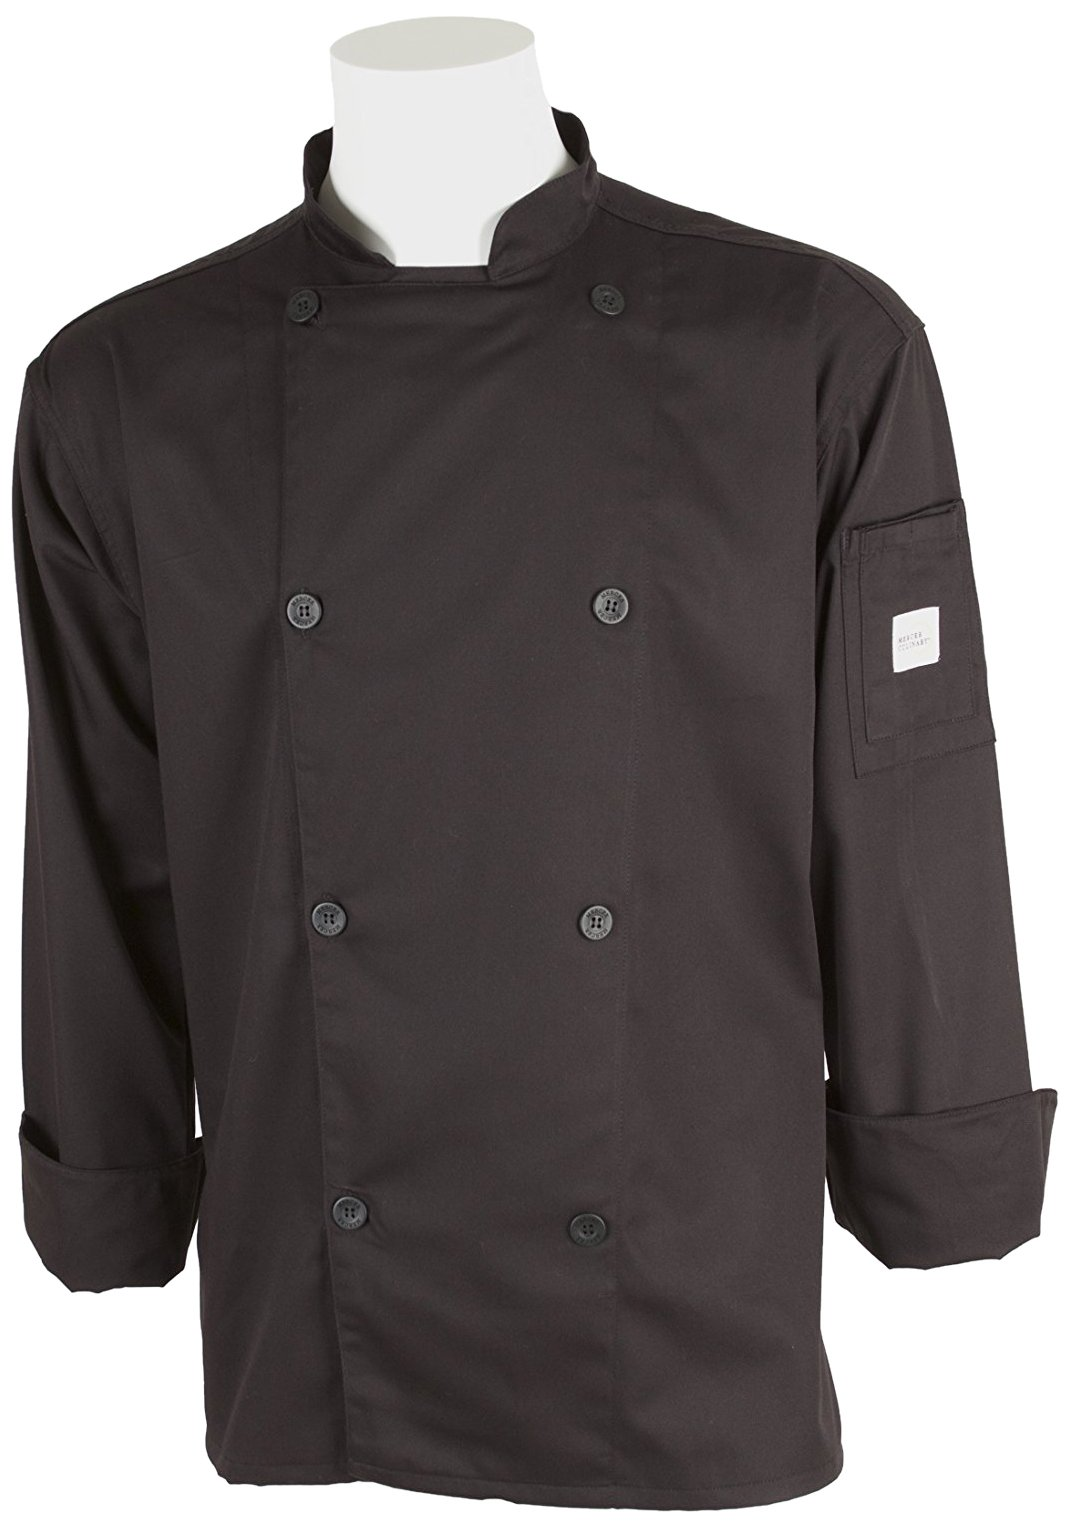 Mercer Culinary M61010BK4X Genesis Men's Chef Jacket with Traditional Buttons, 4X-Large, Black